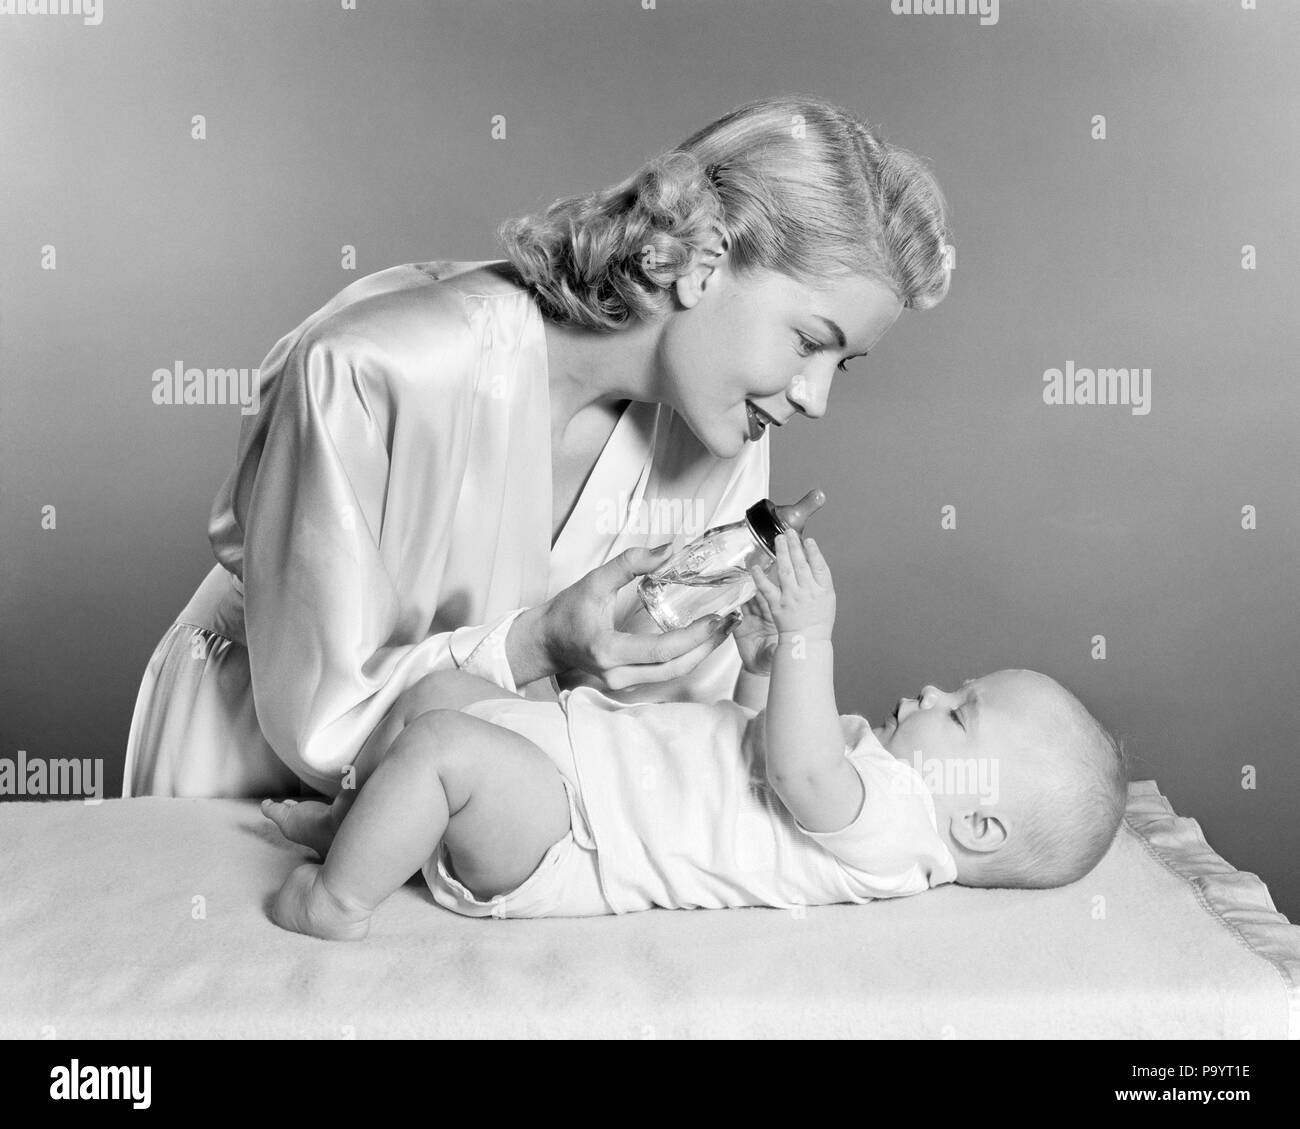 1950s Smiling Blond Woman Mother Wearing Dressing Gown Giving Baby